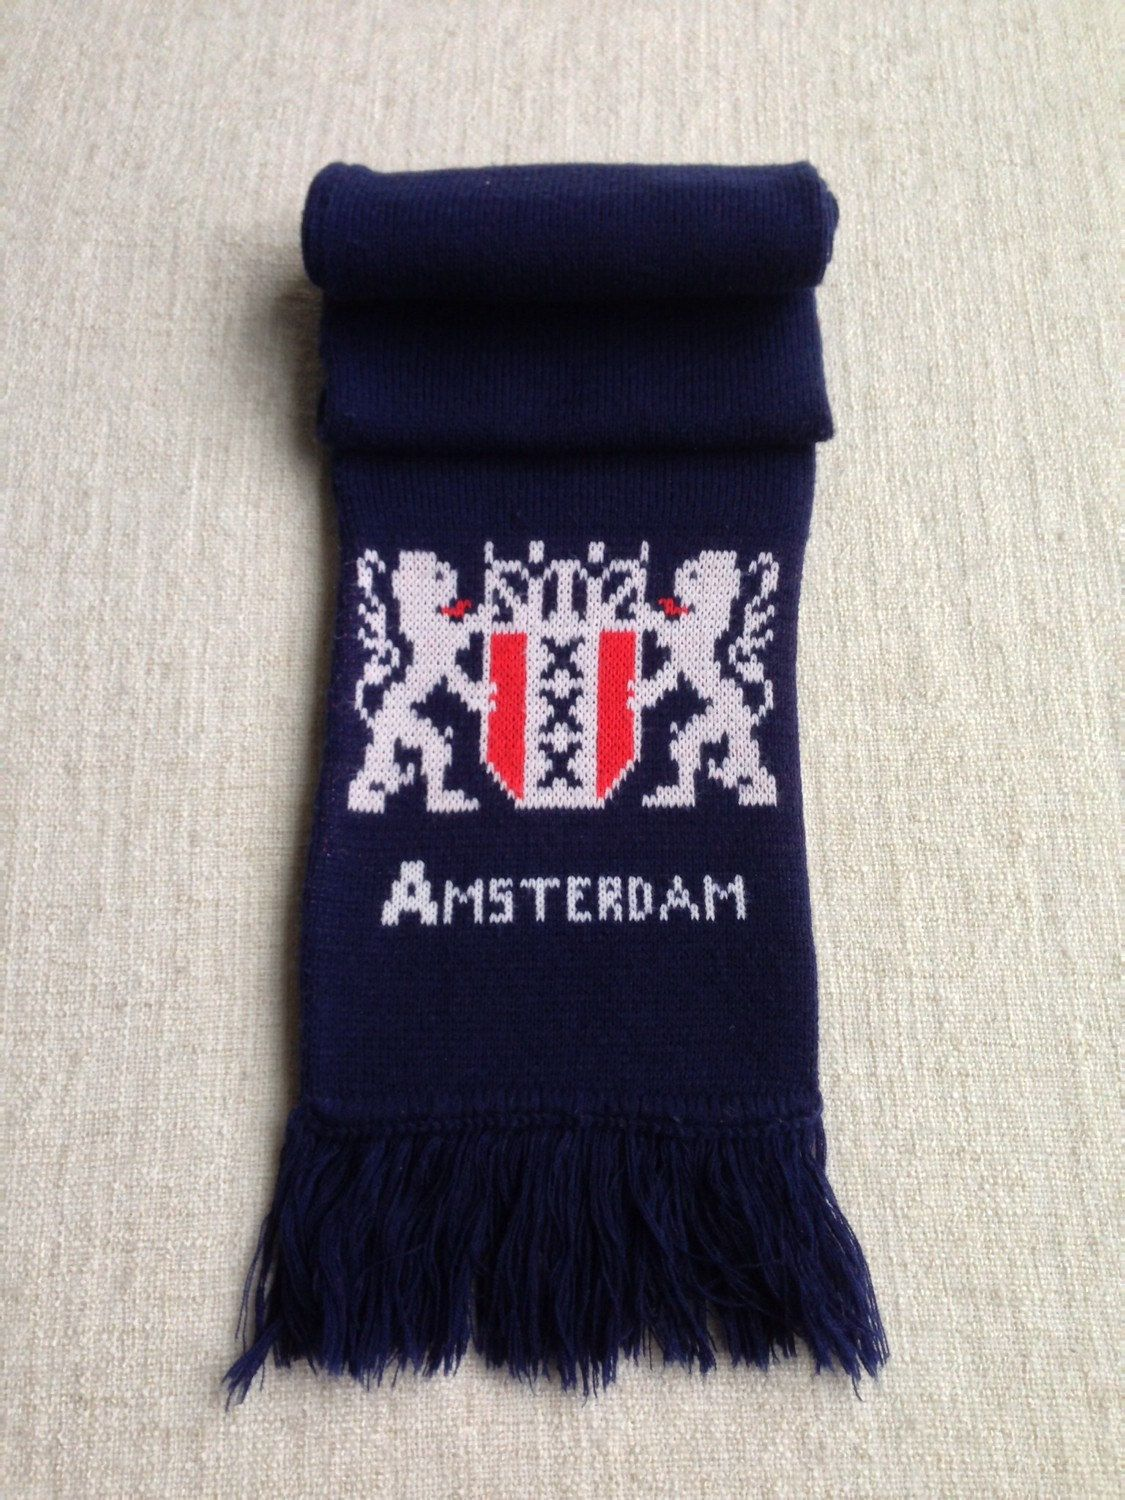 Amsterdam holland made preppy royal school navy blue scarf  by ENGARLAND on Etsy